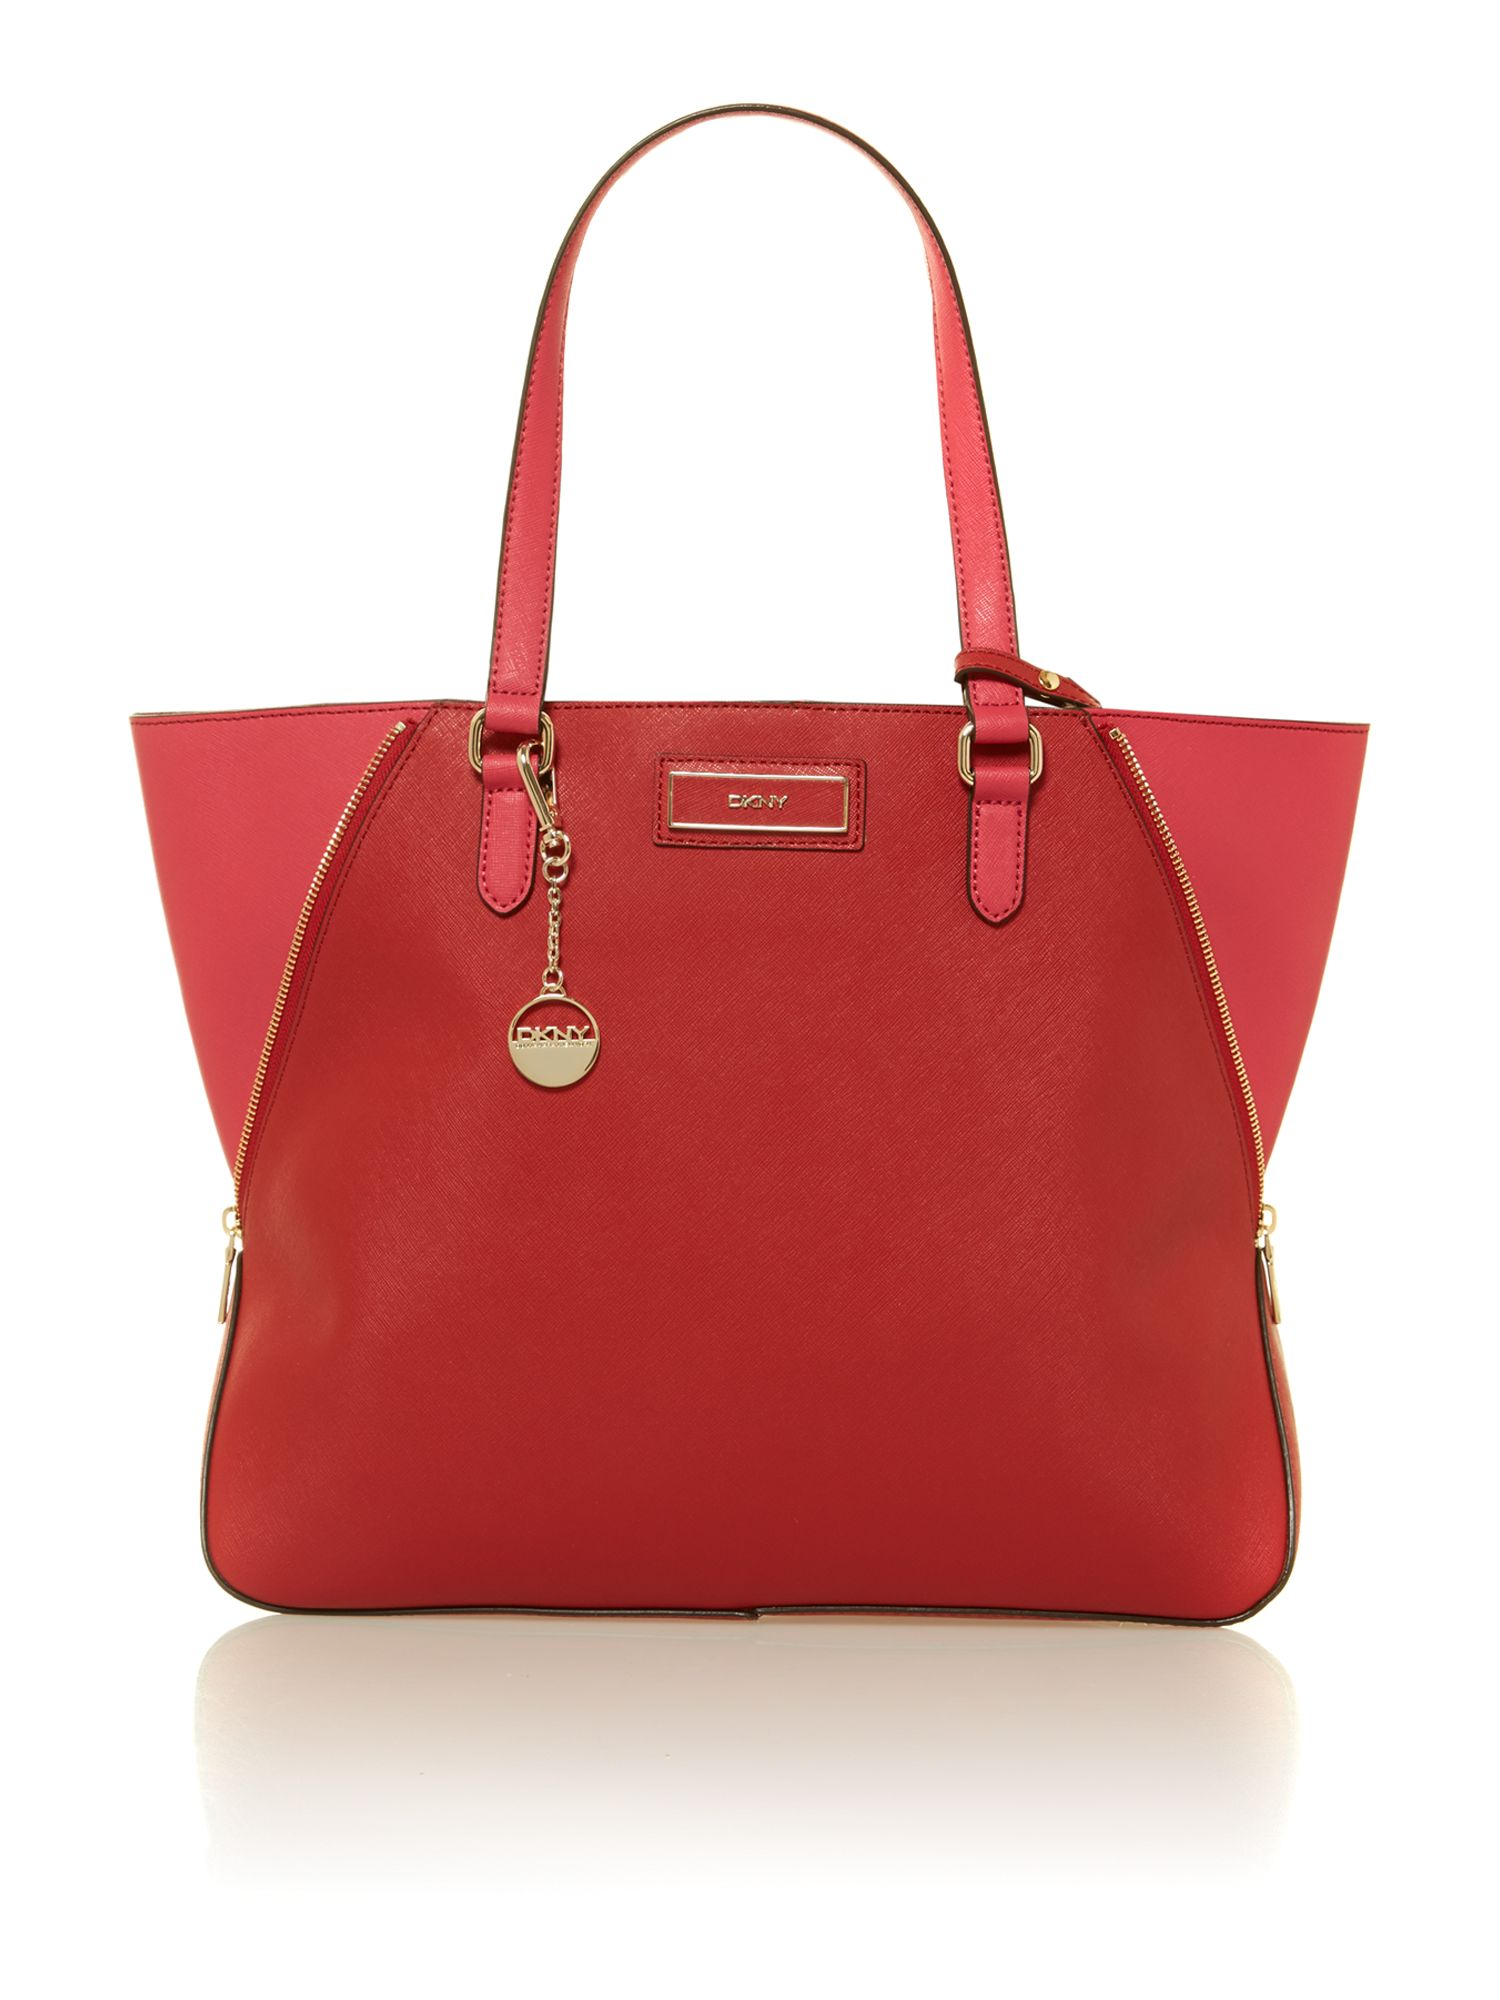 Saffiano red large tote bag